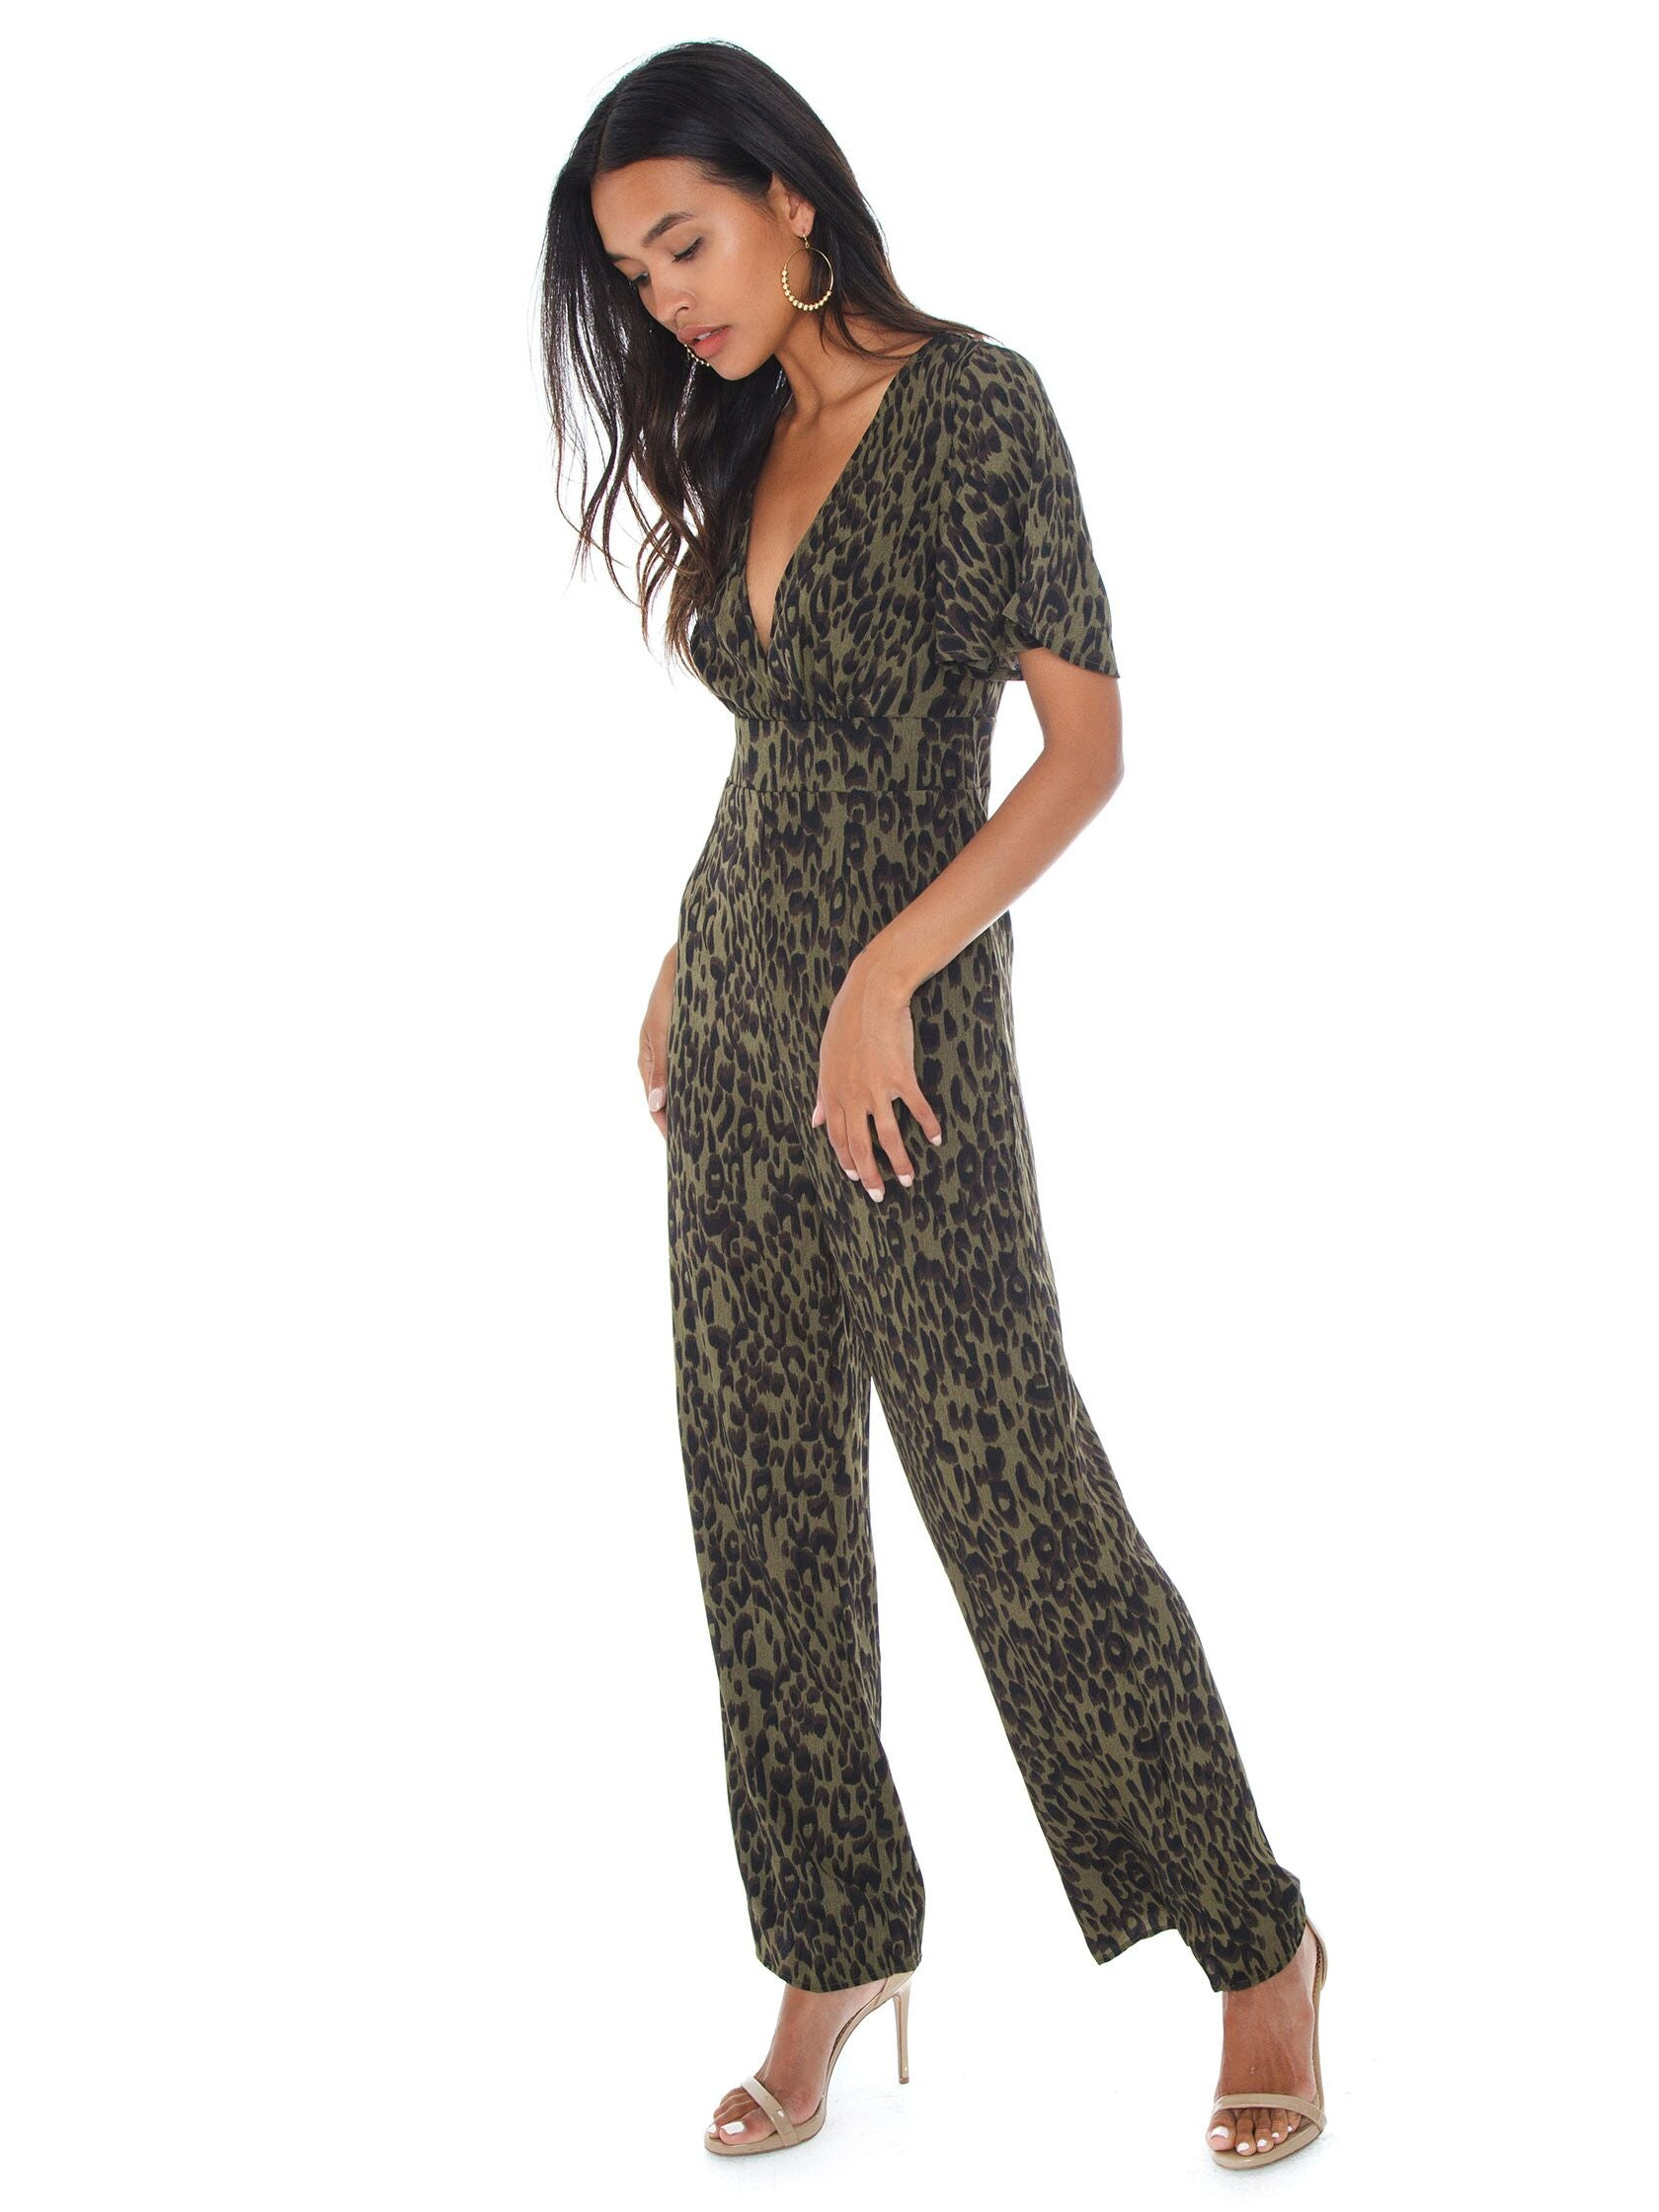 Woman wearing a jumpsuit rental from Lost In Lunar called Callie Pantsuit